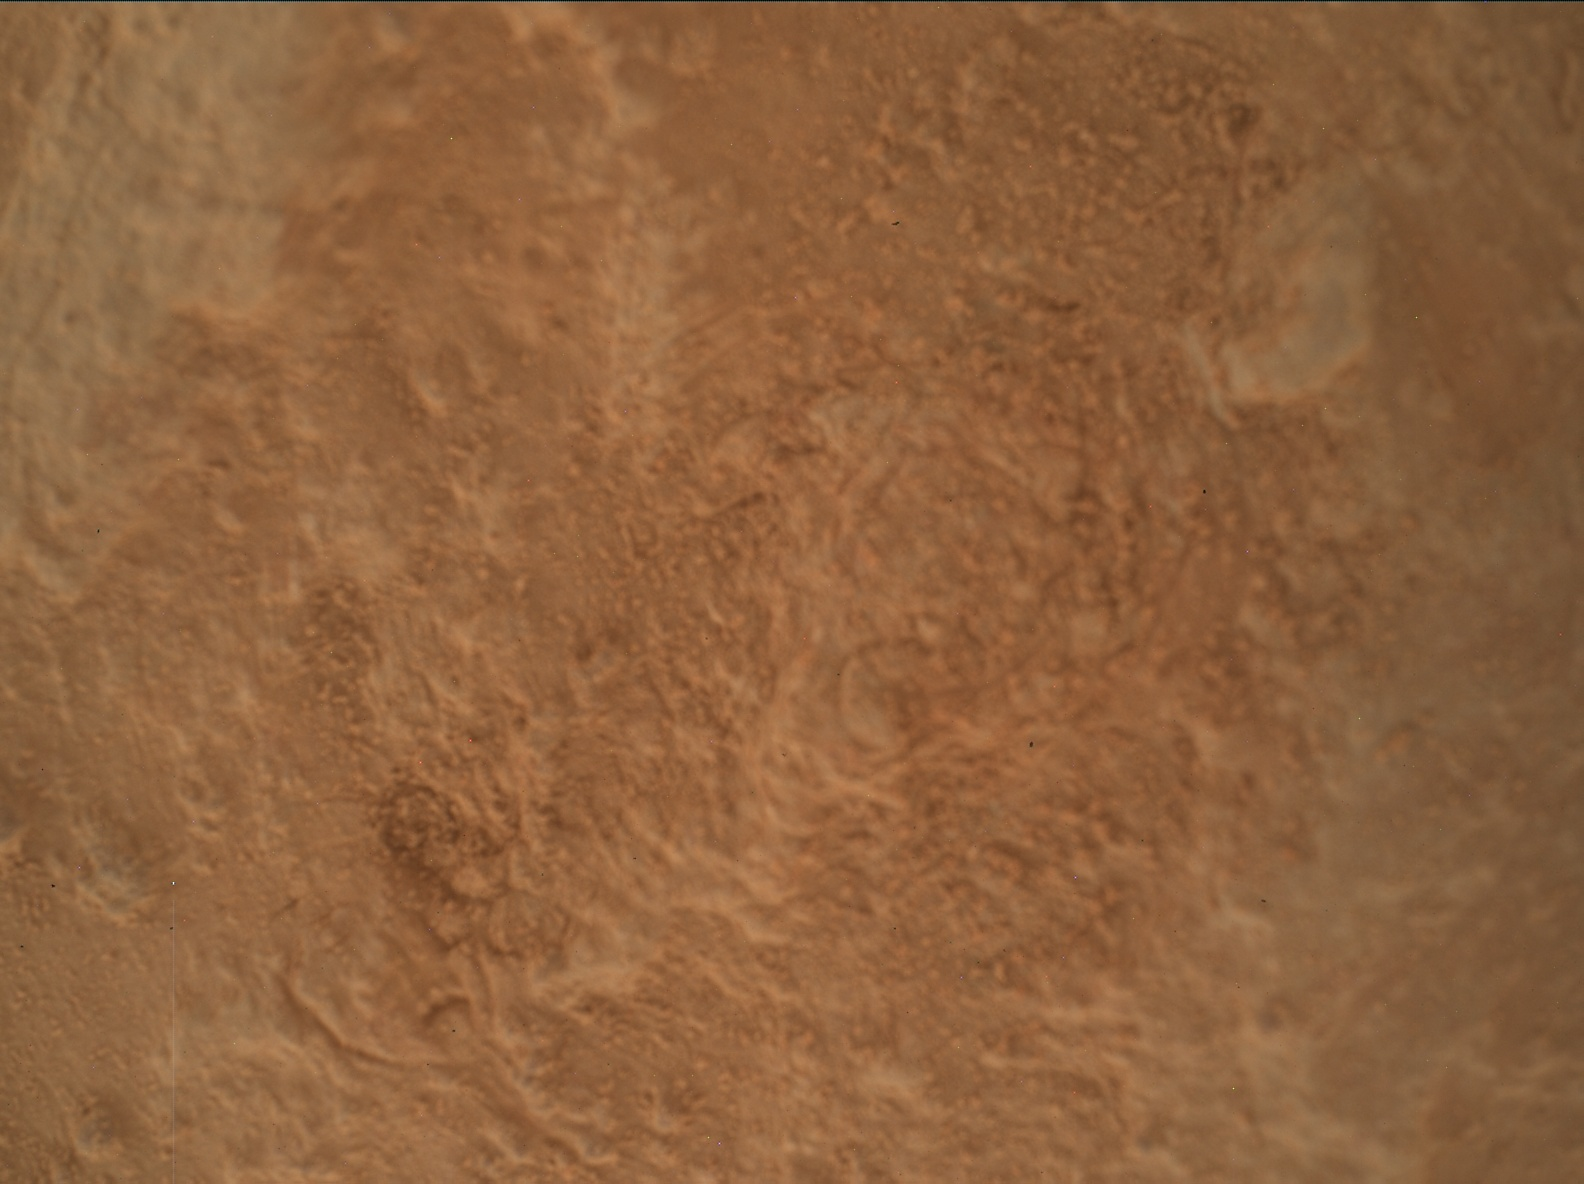 Nasa's Mars rover Curiosity acquired this image using its Mars Hand Lens Imager (MAHLI) on Sol 3167